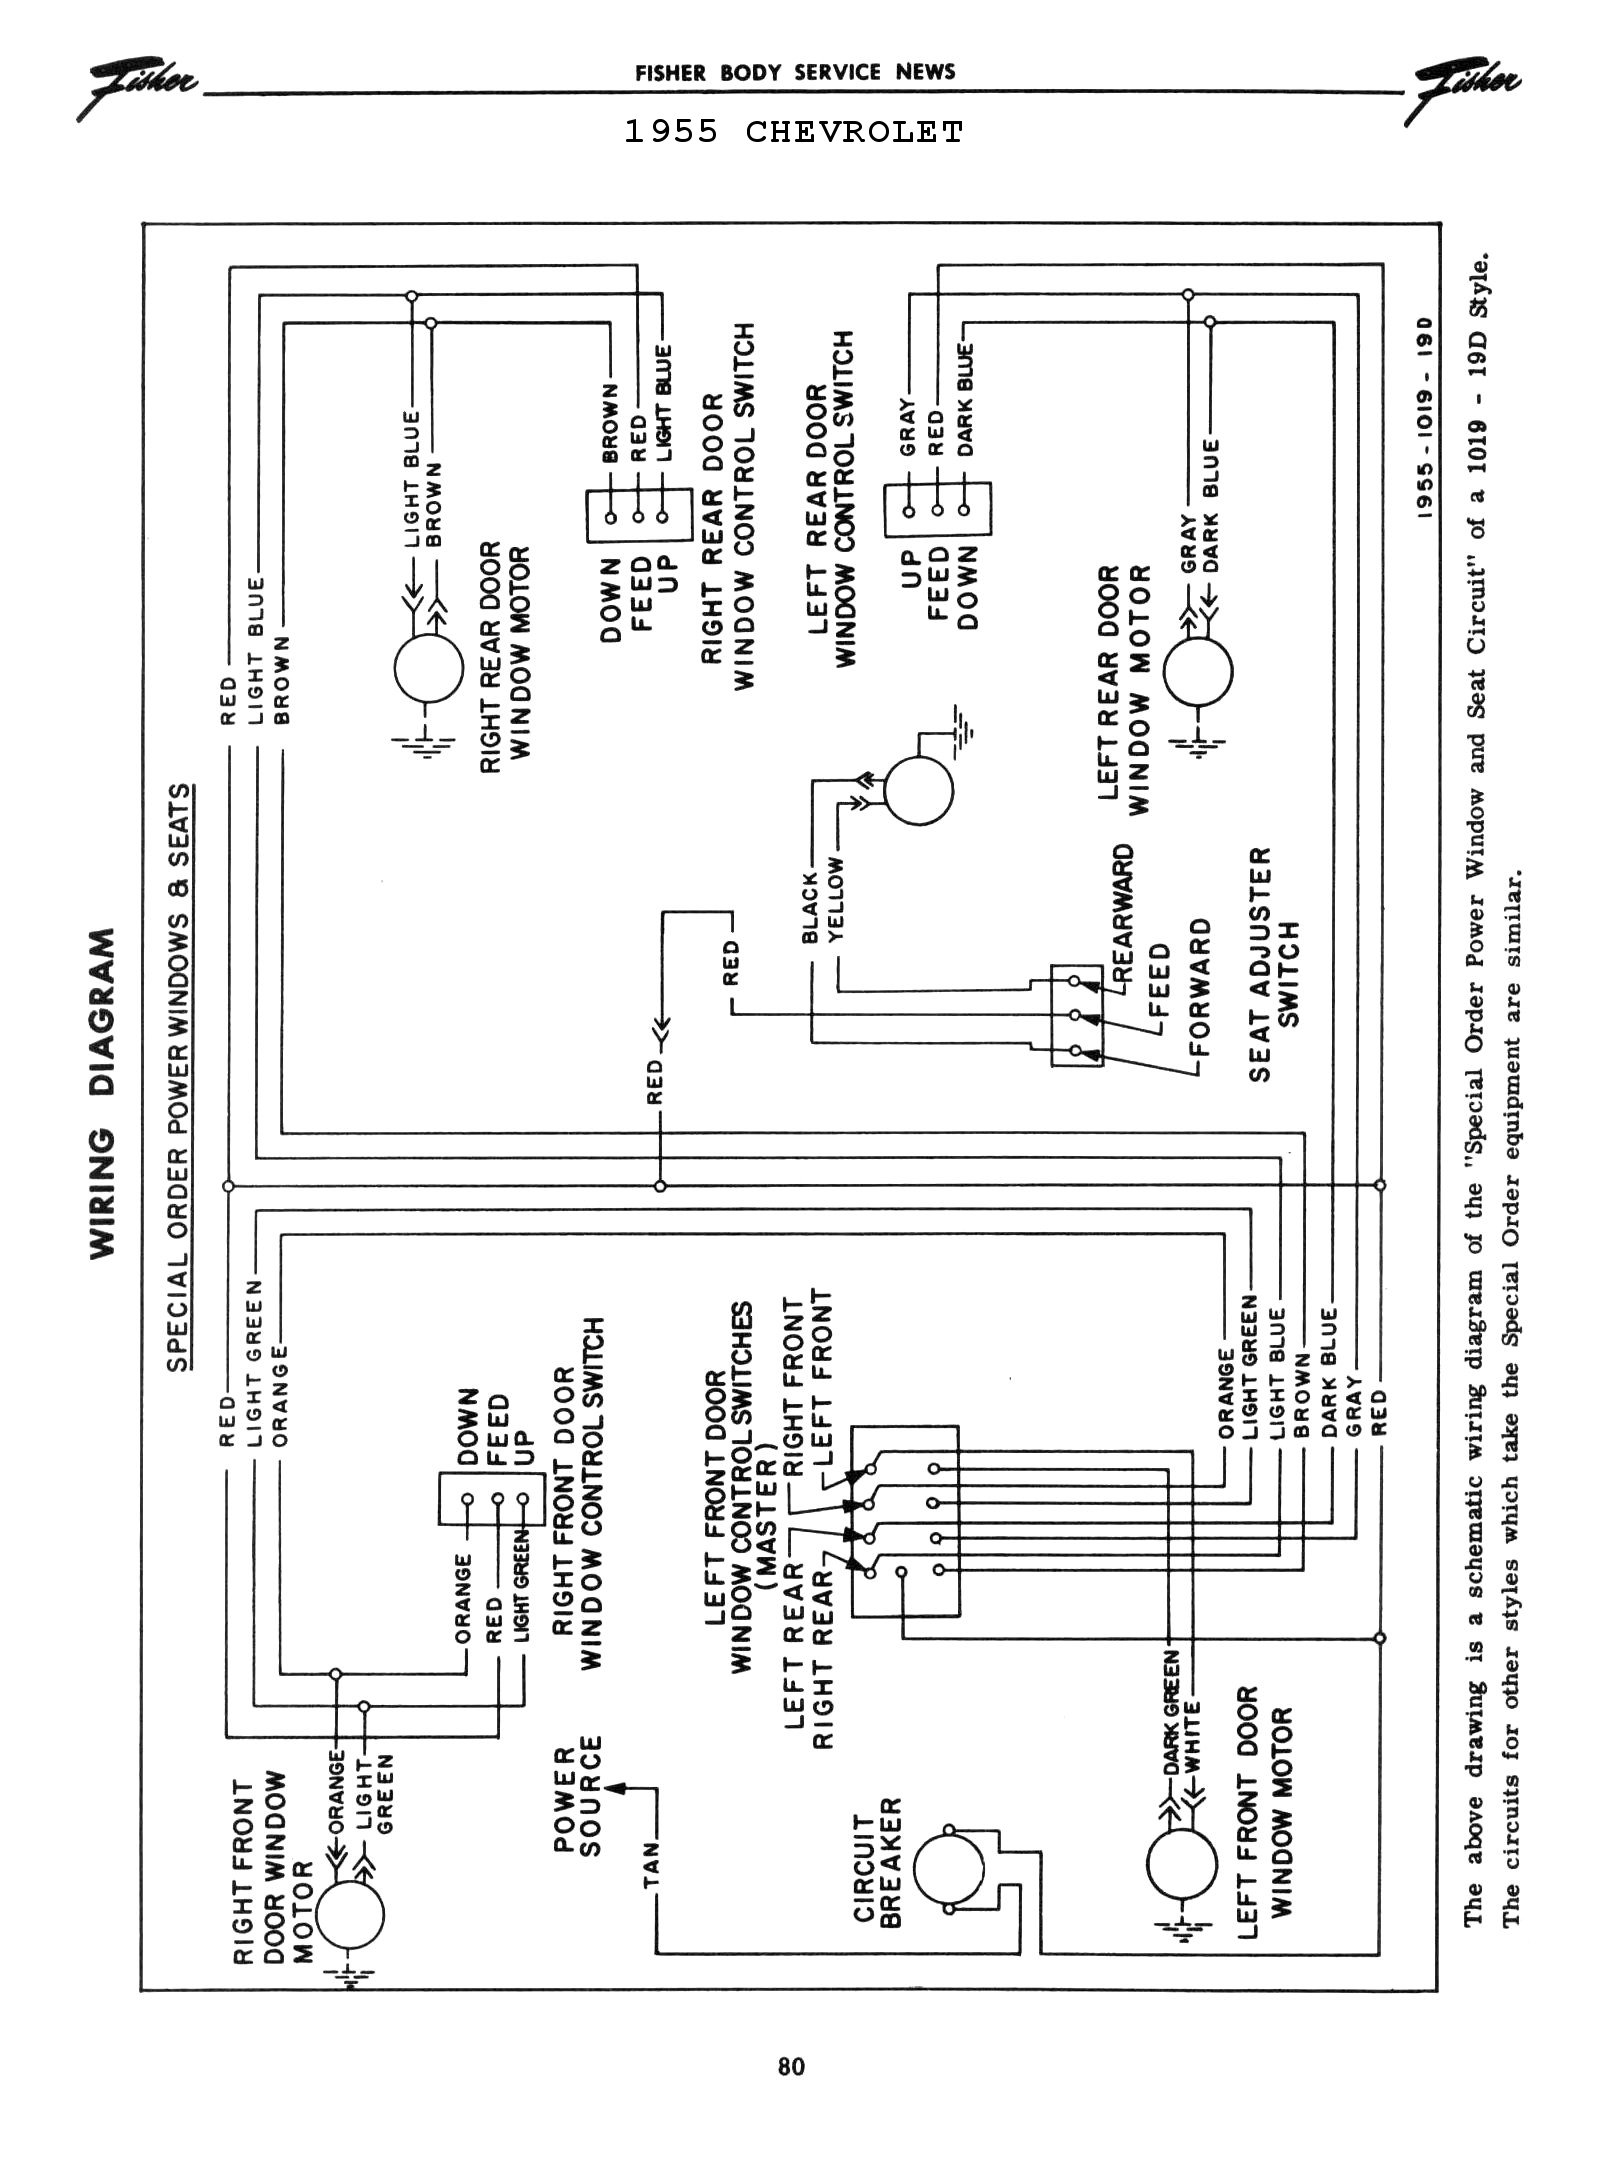 1955 Cj3b Ignition Wiring Diagram Opinions About Cj5 Wire Harness Layout Switch Question Archive Trifive Readingrat Net 1952 Willys Jeep